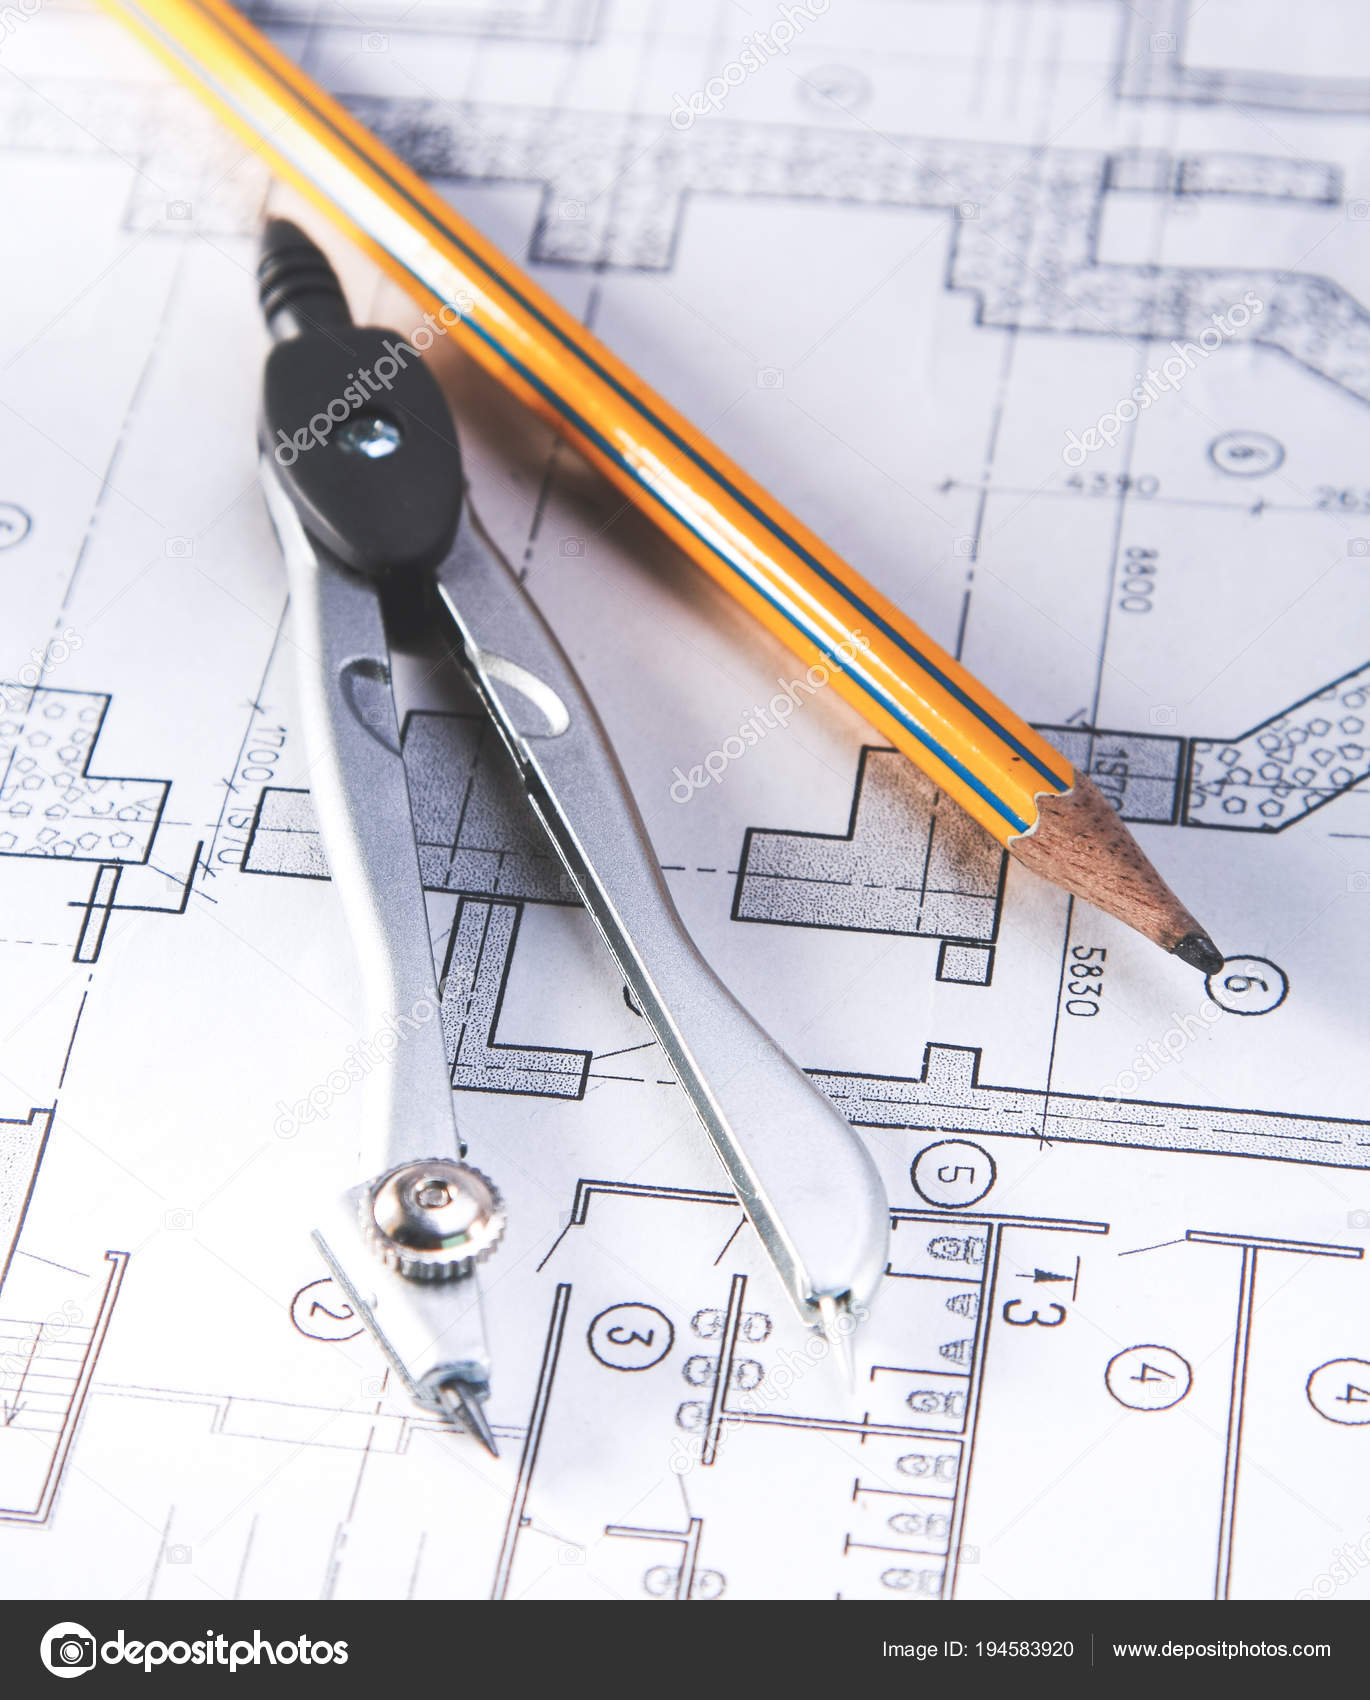 hight resolution of architectural plans compass and ruler on the desk stock image